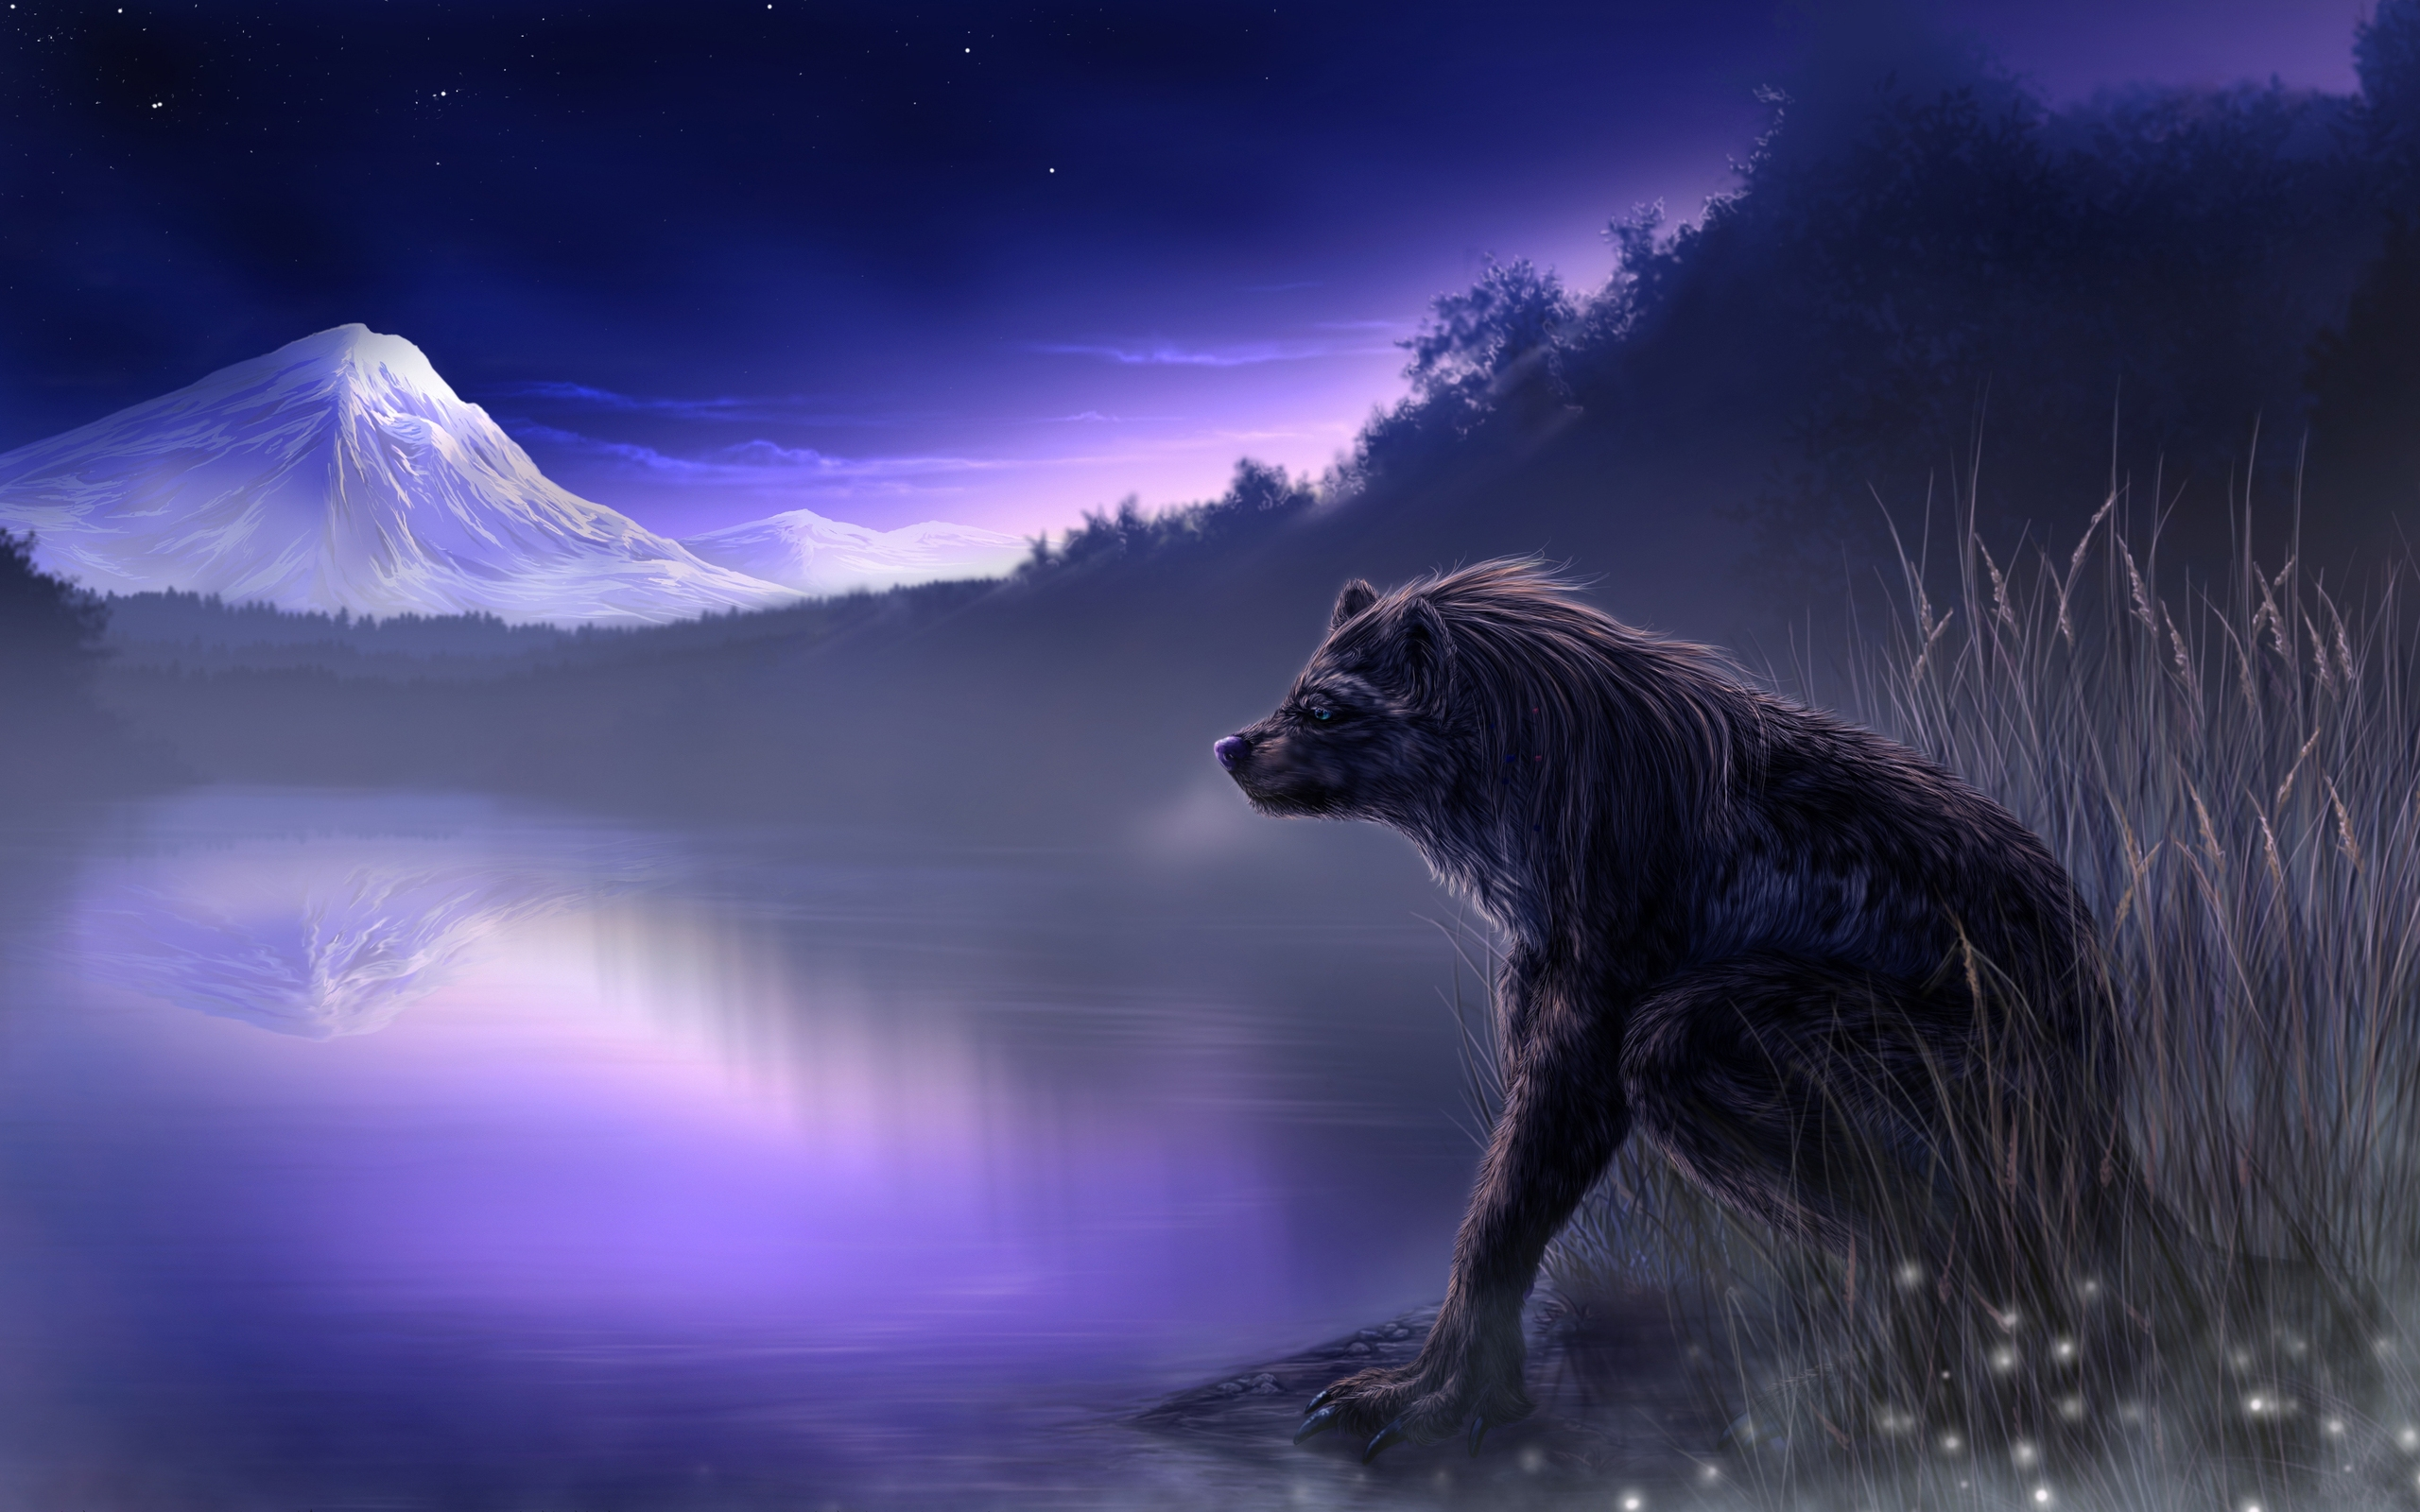 Wallpaper free download werewolf background pic wpd00154 download voltagebd Choice Image